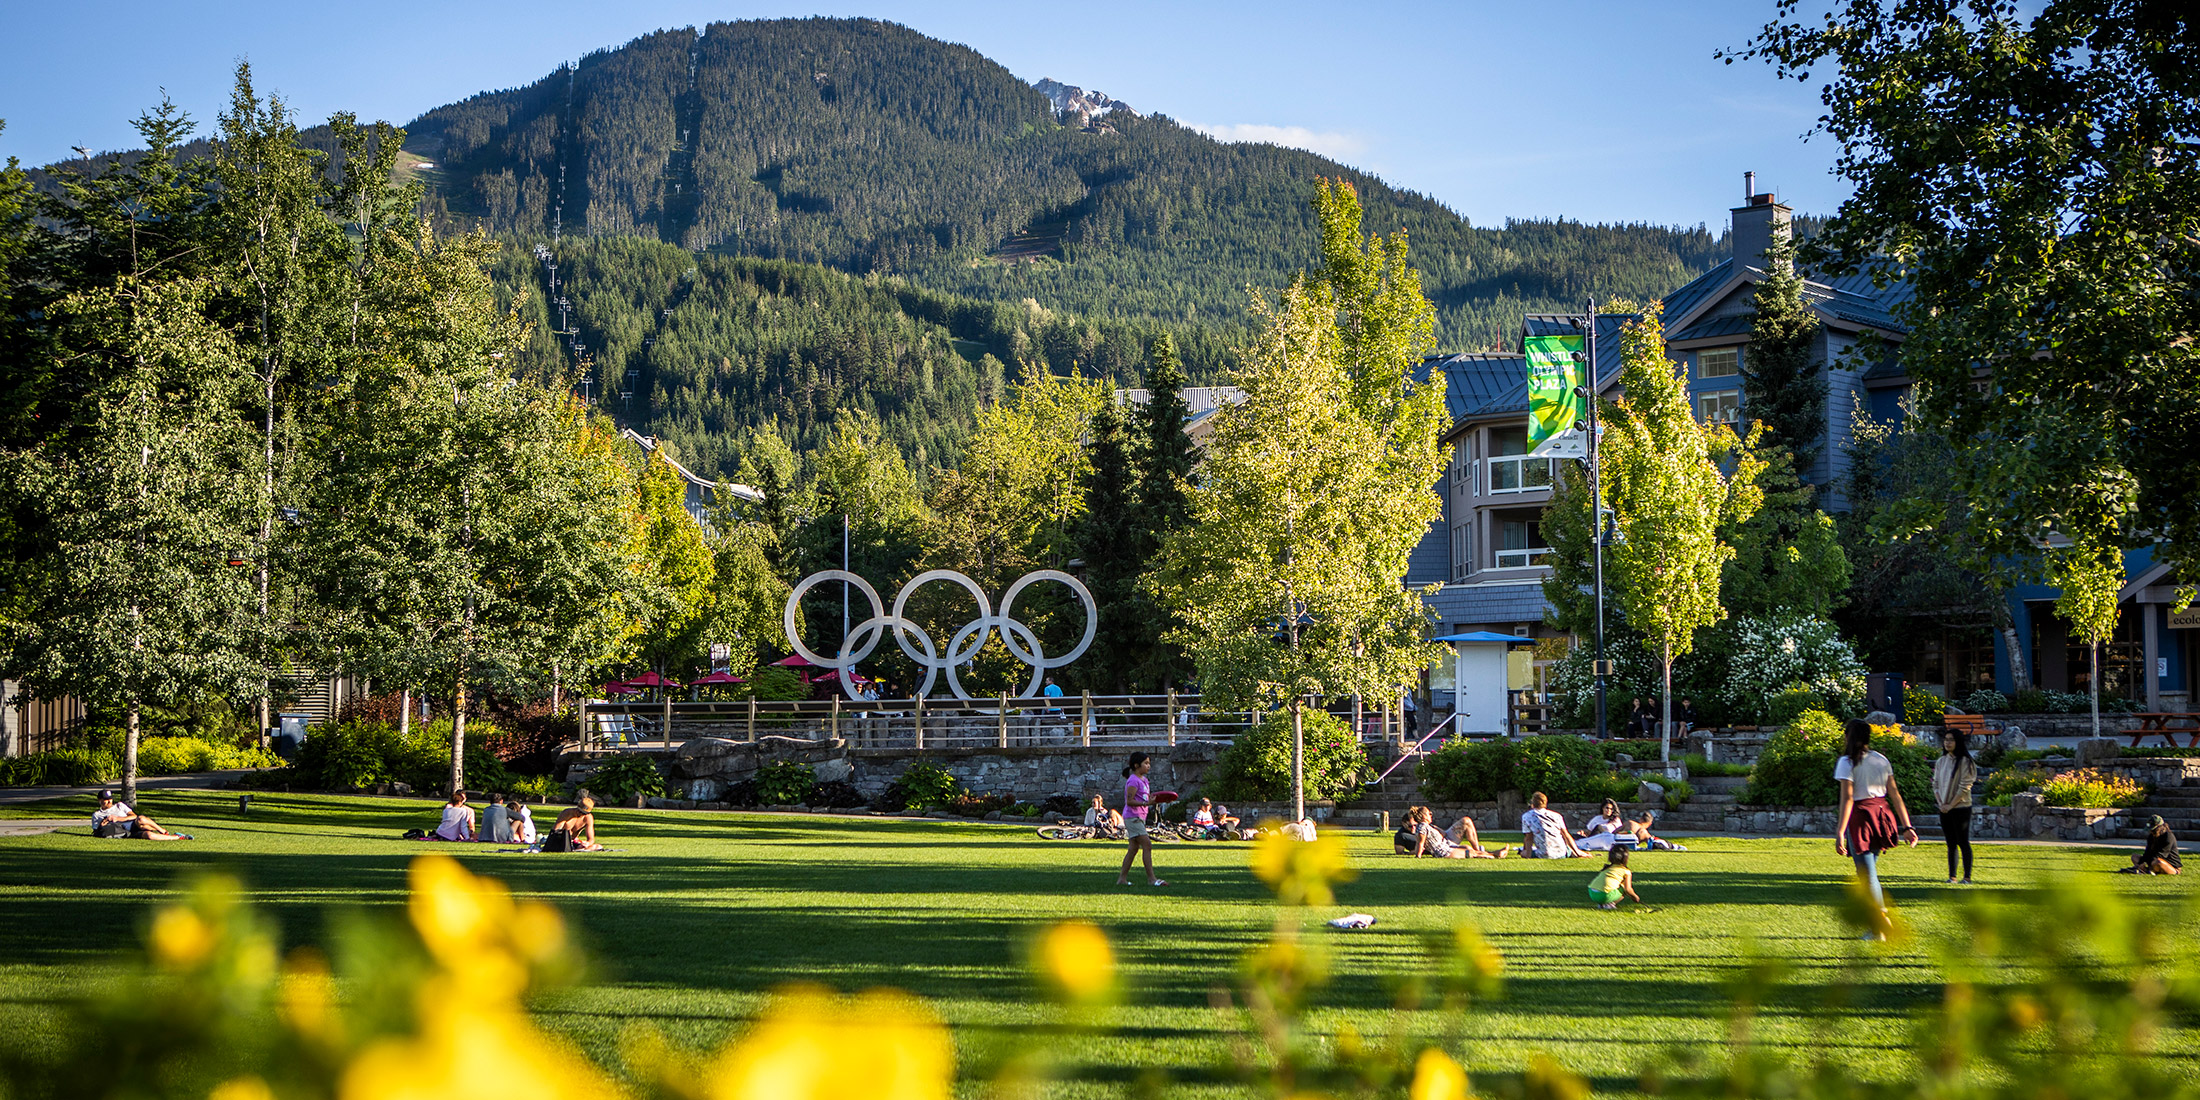 2010 Olympic and Paralympic Winter Games in Whistler